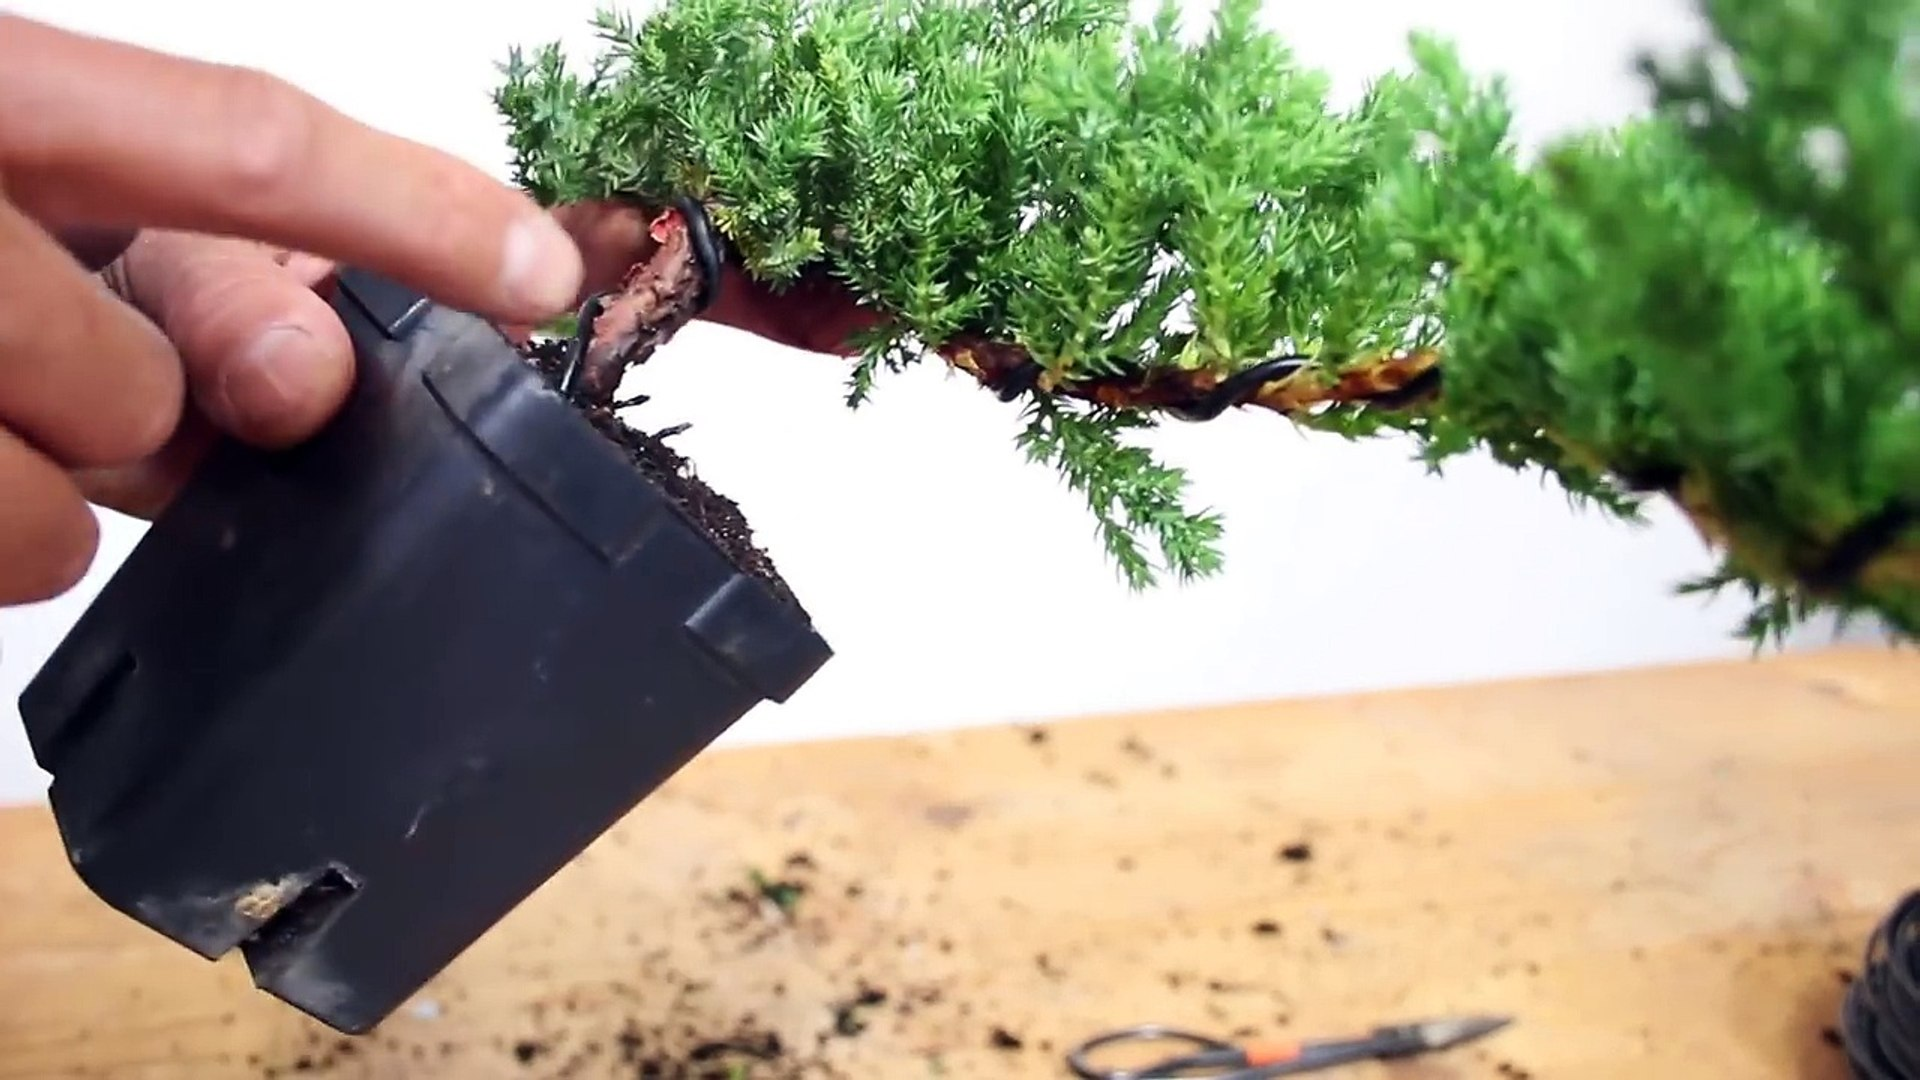 How to Create a Bonsai with Movement : Wiring a bonsai tree trunk Wiring Juniper Bonsai on wiring bonsai step by step, trim juniper bonsai, hollywood juniper bonsai, shaping juniper bonsai, chinese juniper bonsai, shimpaku juniper bonsai, wiring rosemary bonsai, starting juniper bonsai,